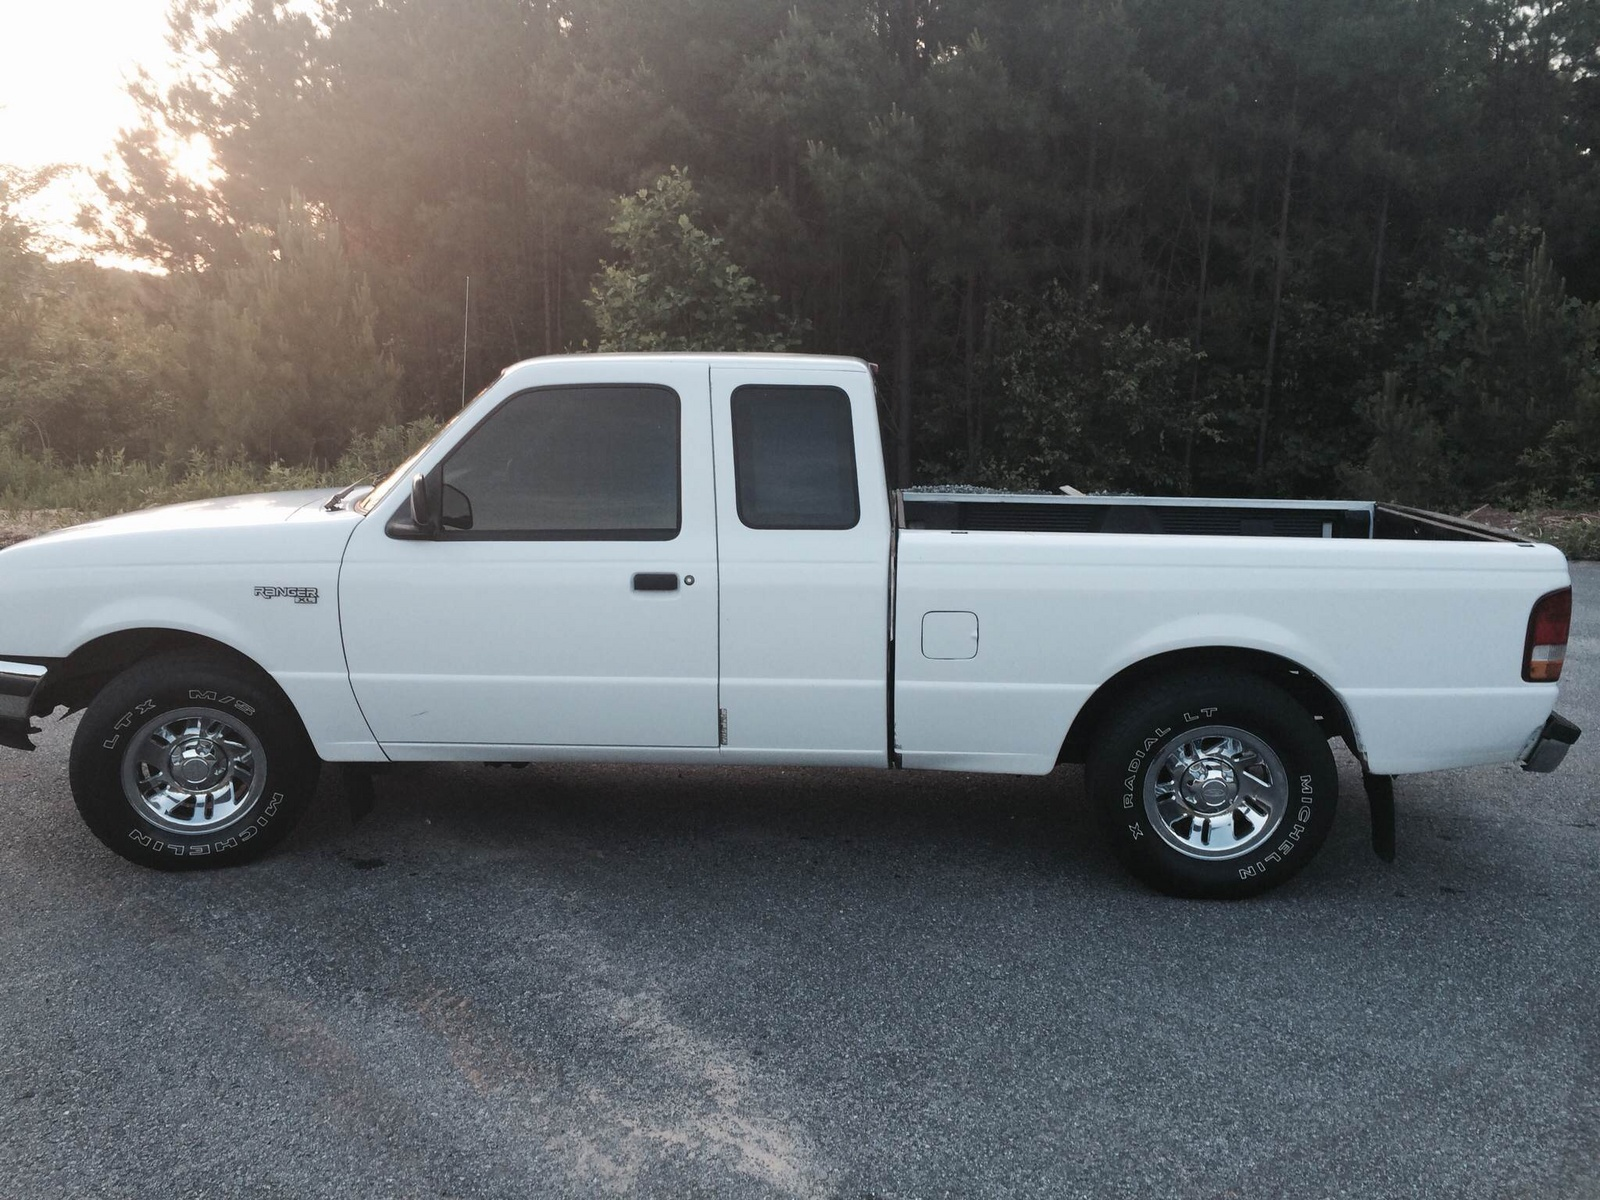 1997 Ford Ranger picture